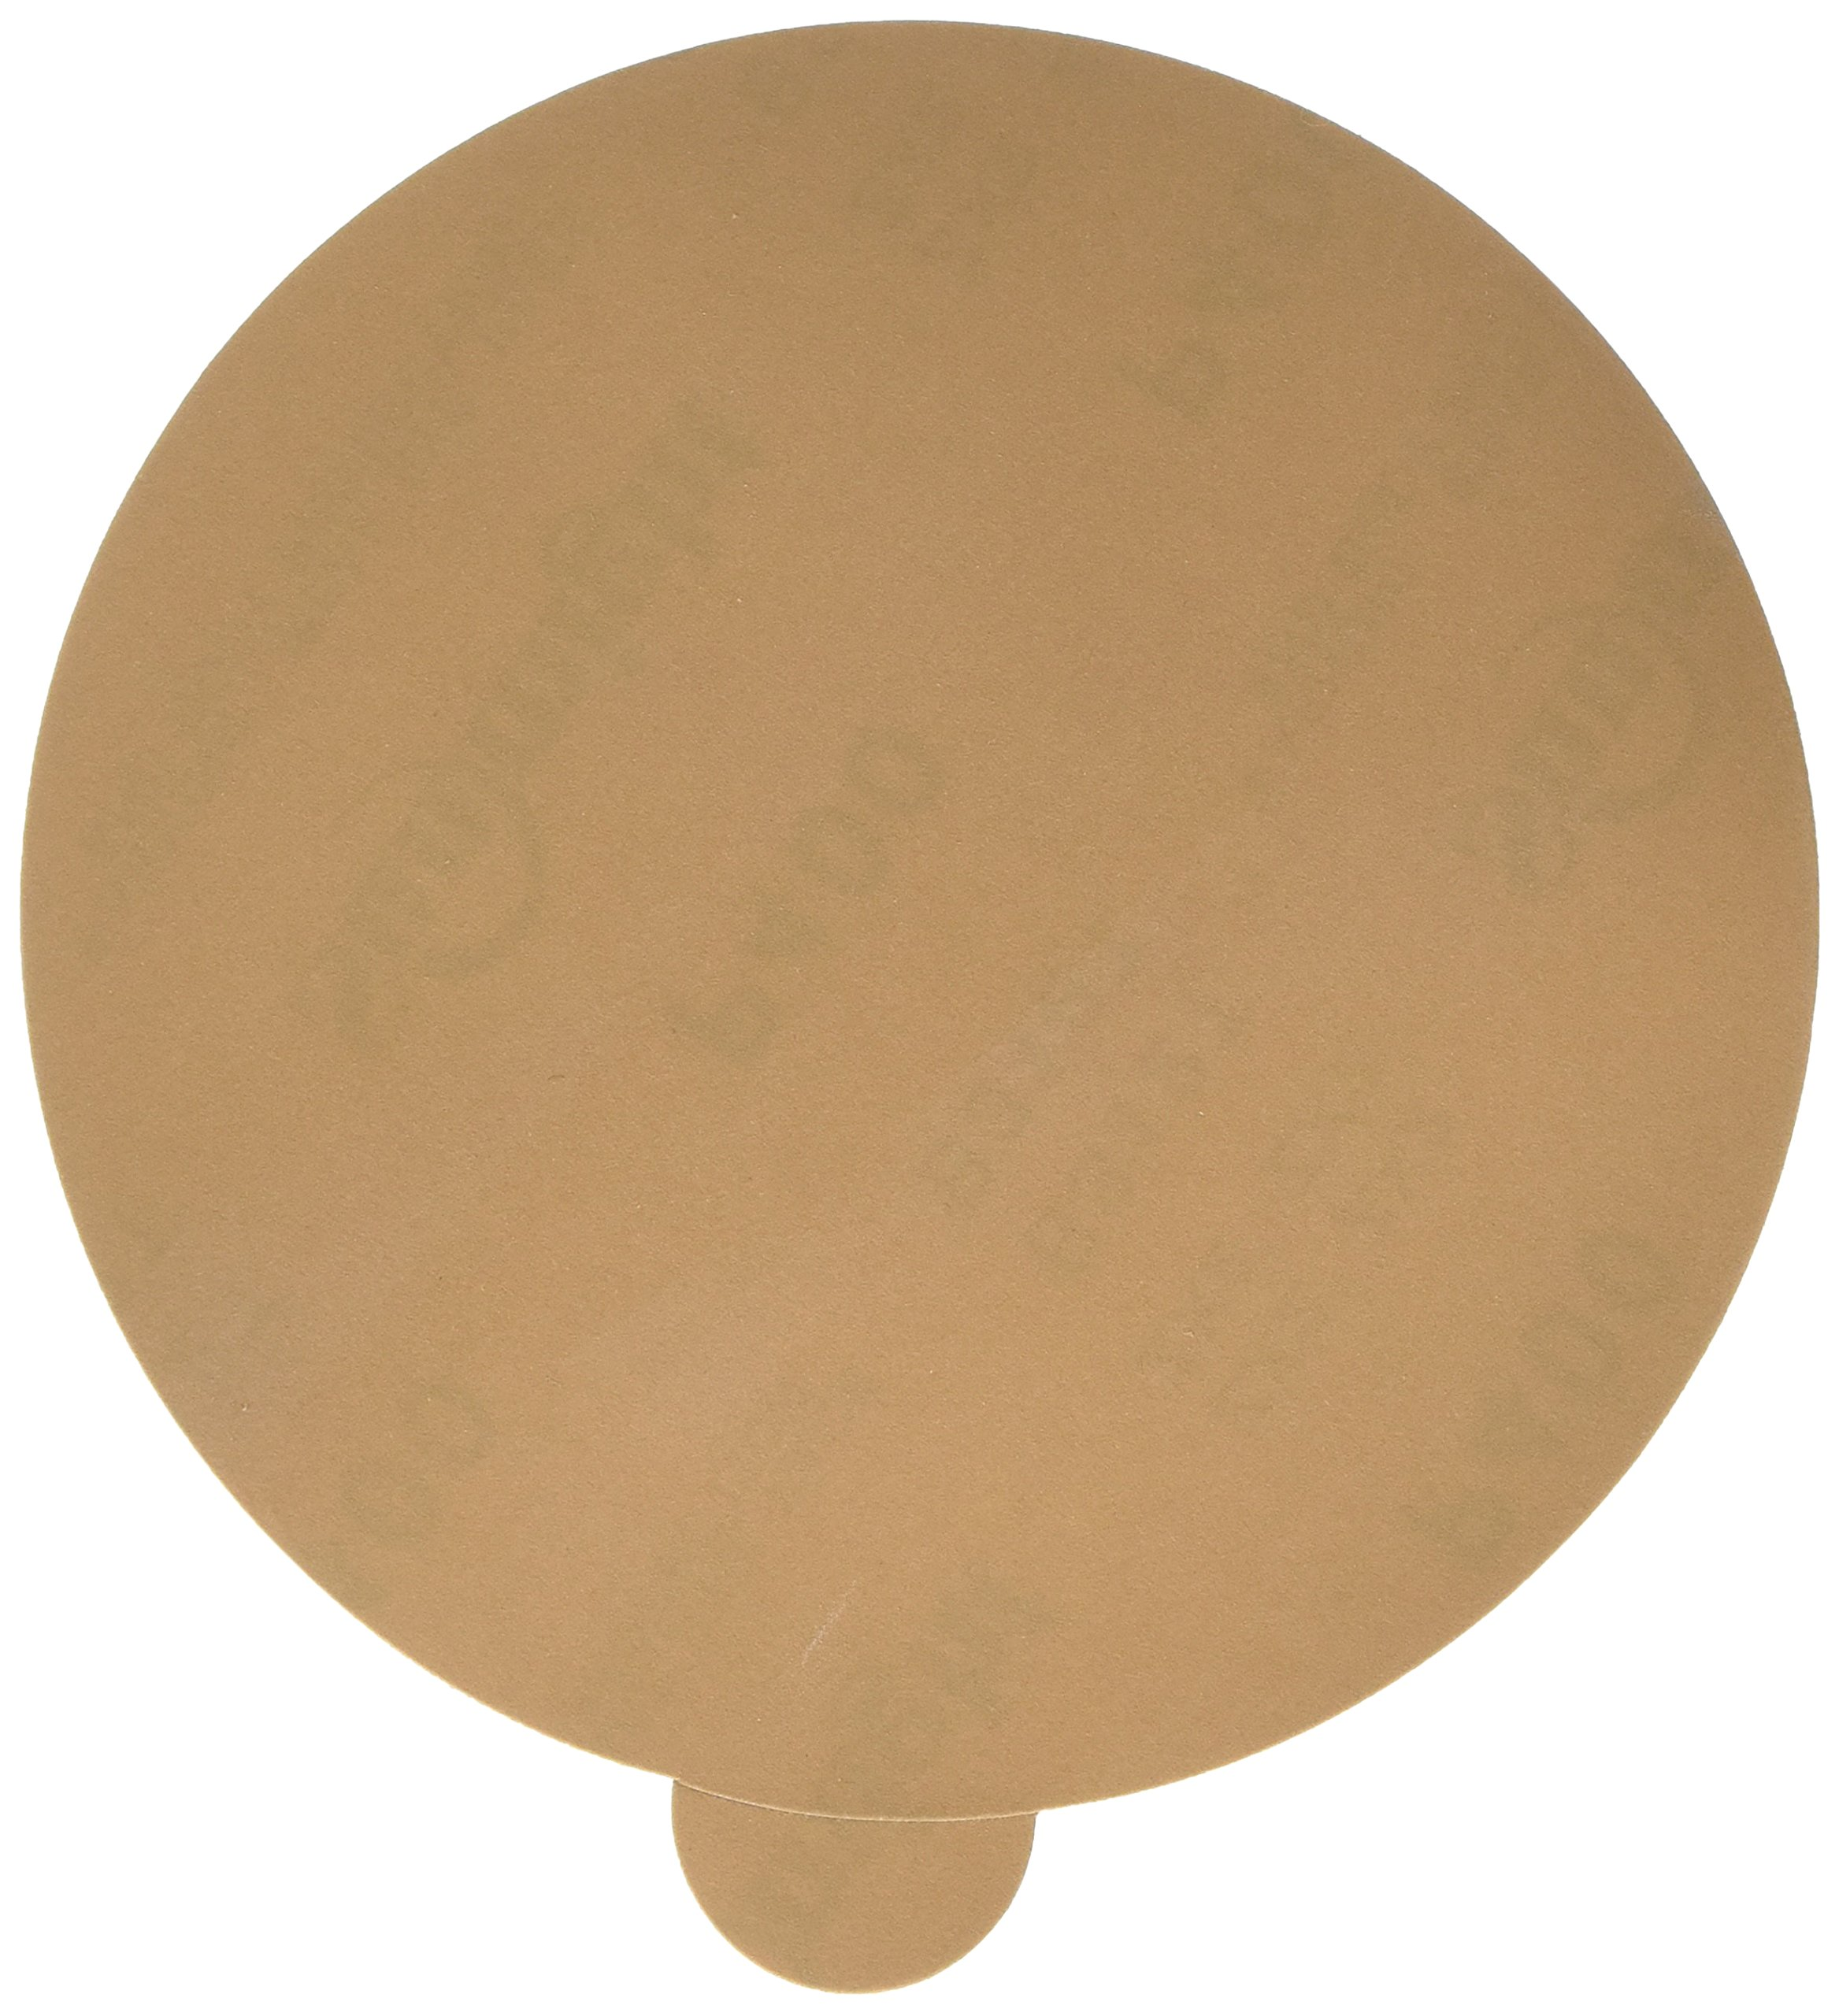 Sunmight 02316 1 Pack 6'' No Hole PSA Disc (Gold Grit 400)